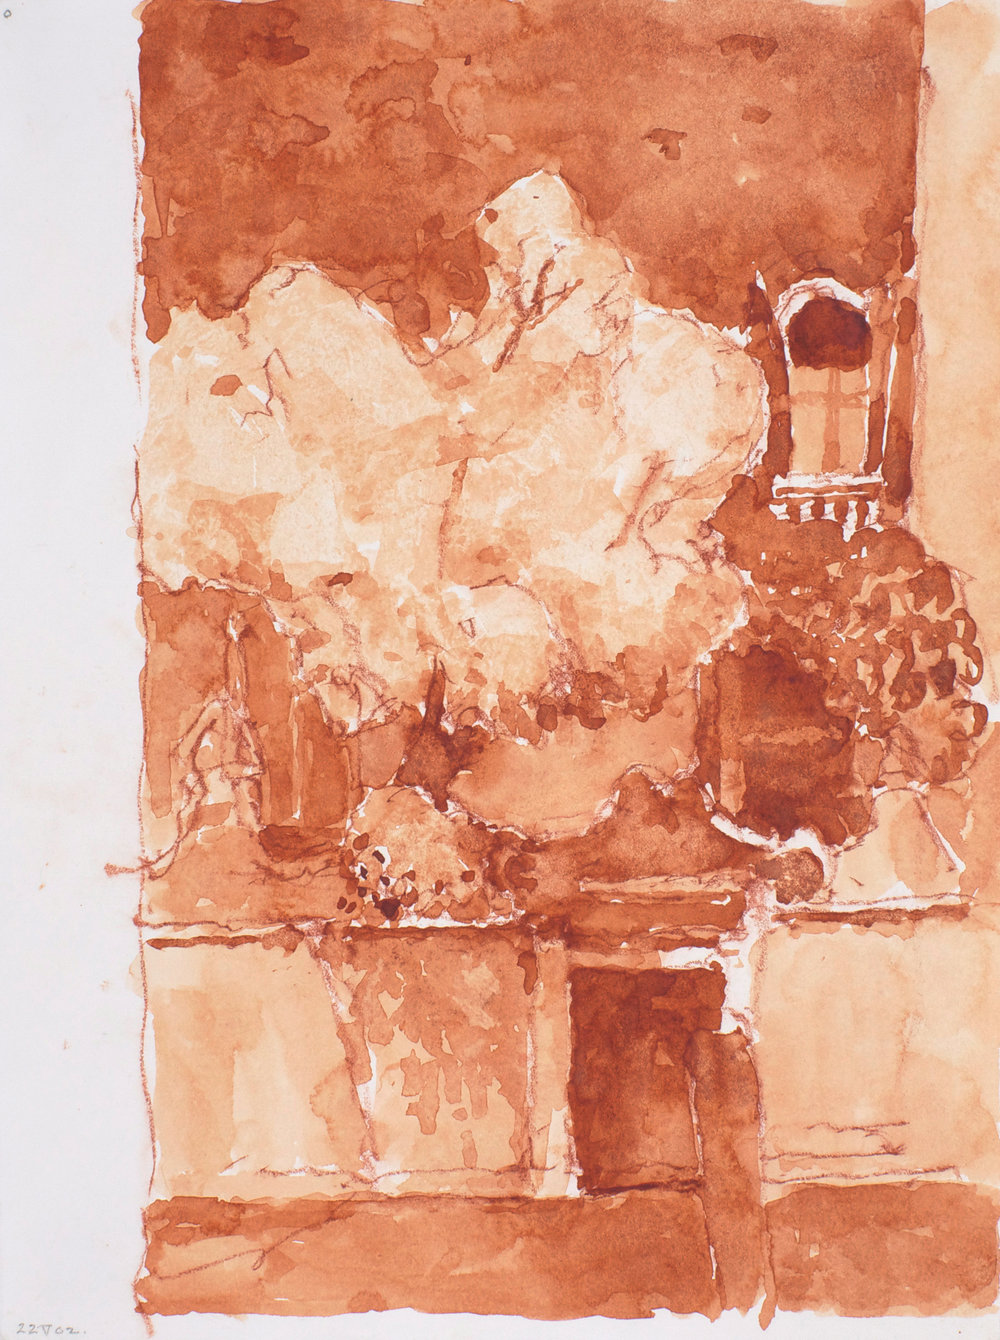 2002_Santa_Ternita_Burnt_Sienna_Santa_Ternita_watercolour_and_red_conte_on_paper_15x11in_38x28cm_WPF335.jpg